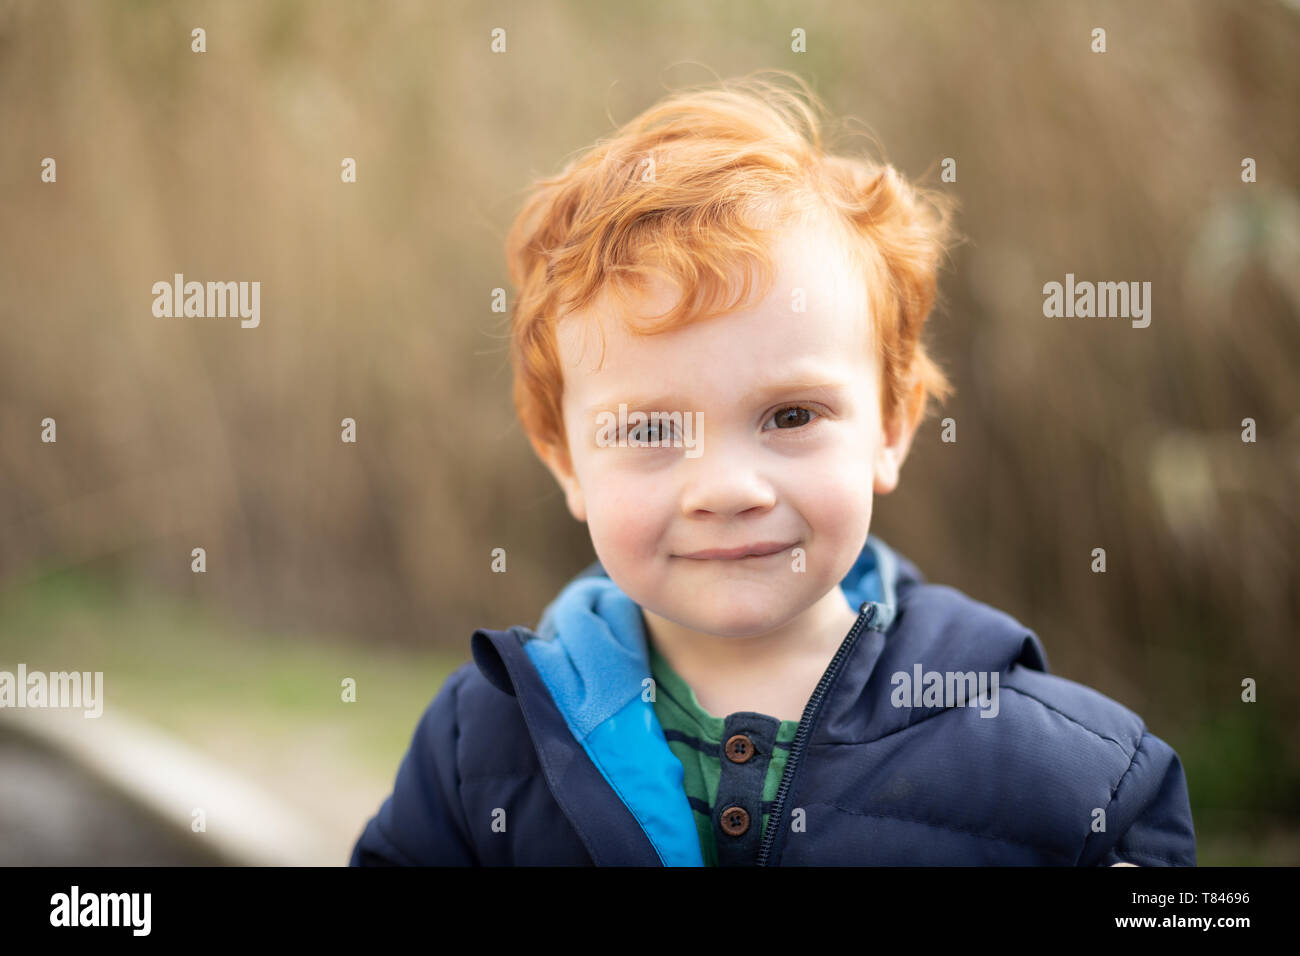 Portrait of boy with red hair Stock Photo